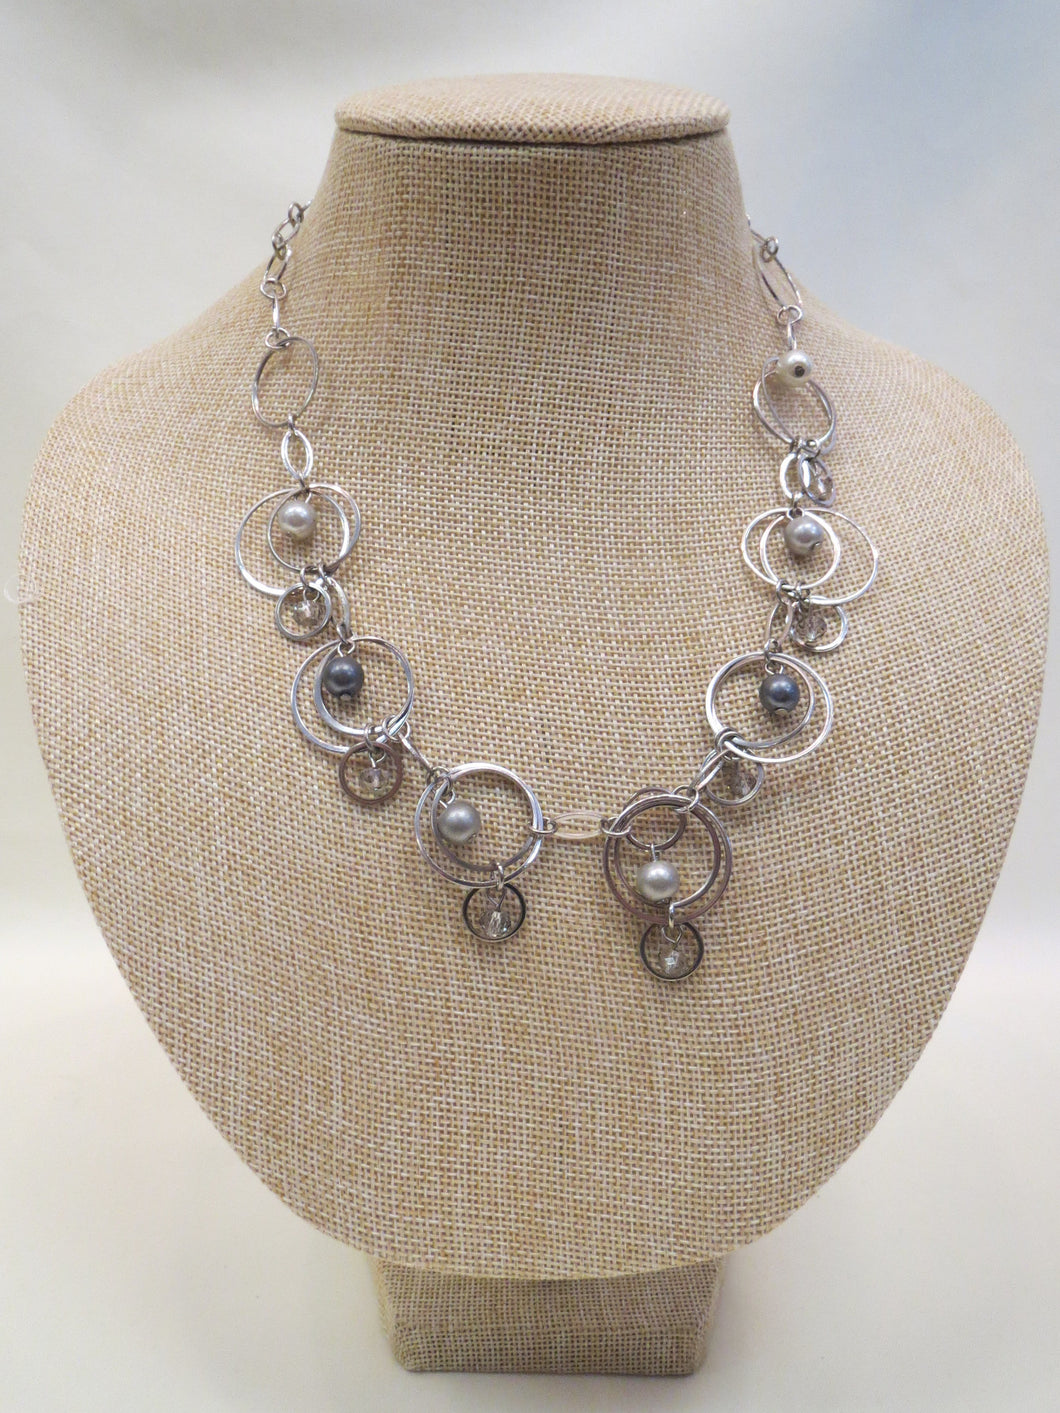 ADO Silver Linked Necklace with Pearls | All Dec'd Out